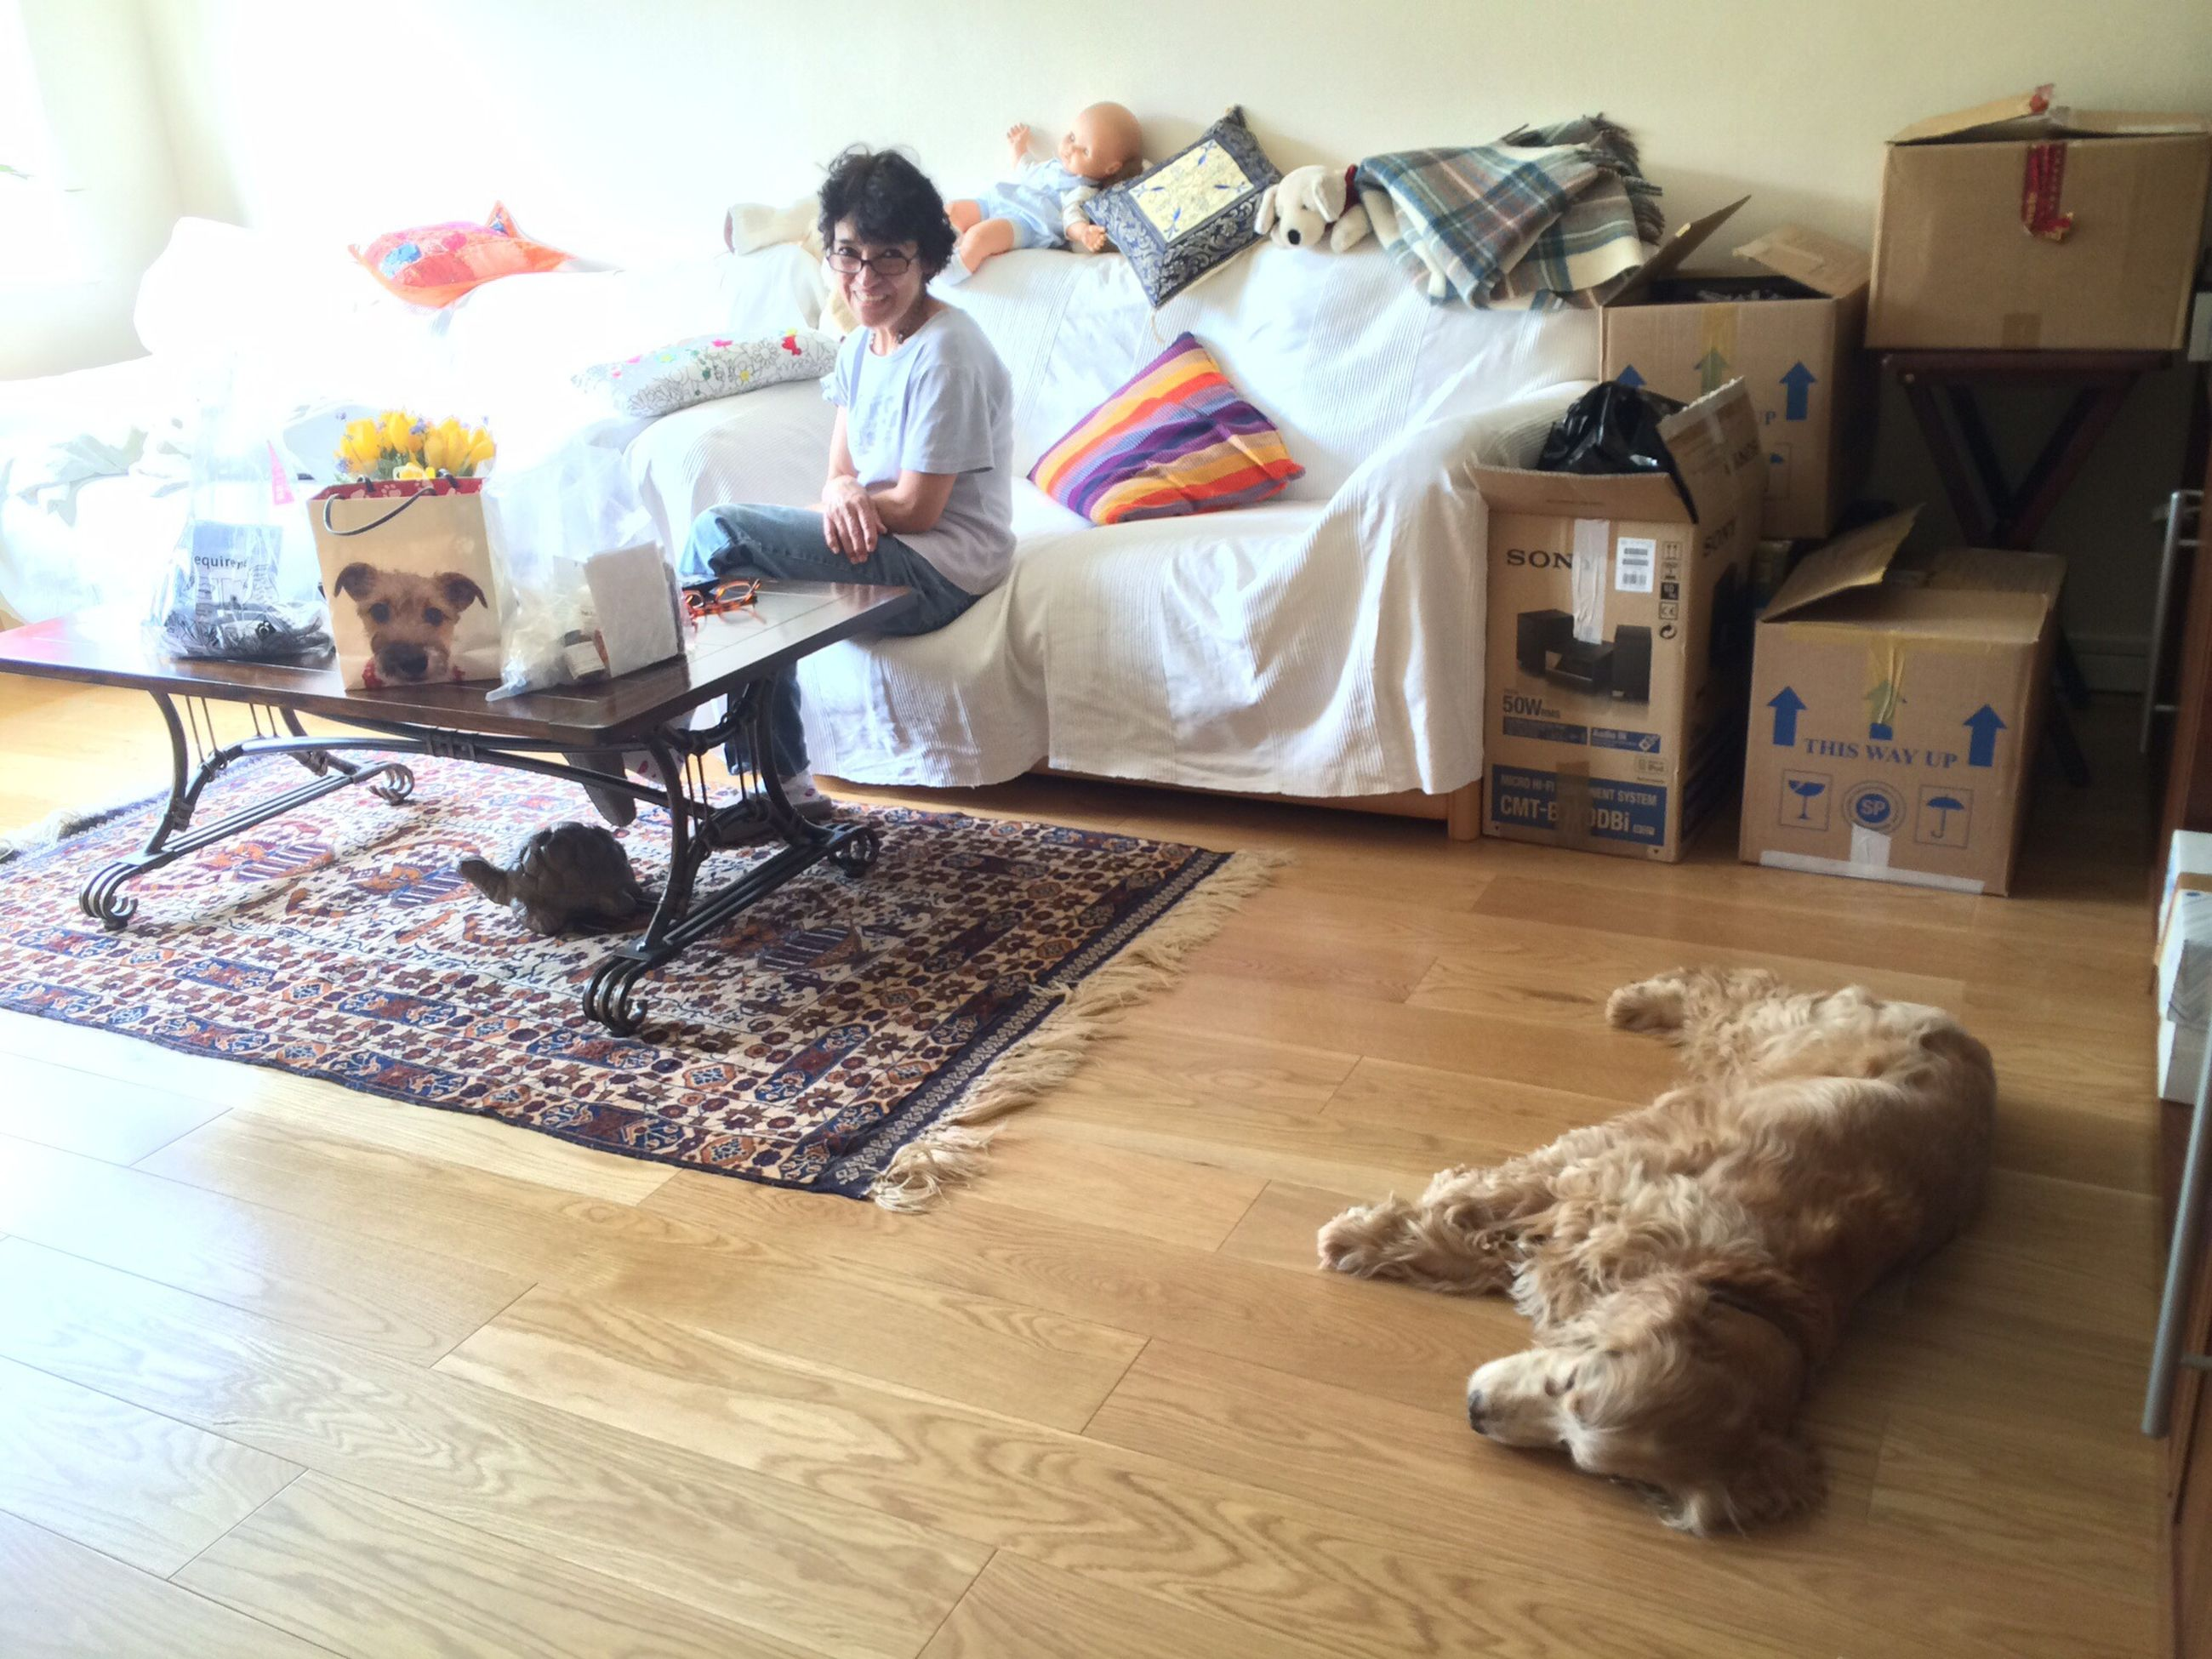 indoors, animal themes, chair, relaxation, home interior, domestic animals, table, one animal, sitting, pets, mammal, dog, flooring, lying down, sofa, resting, full length, day, no people, animal representation